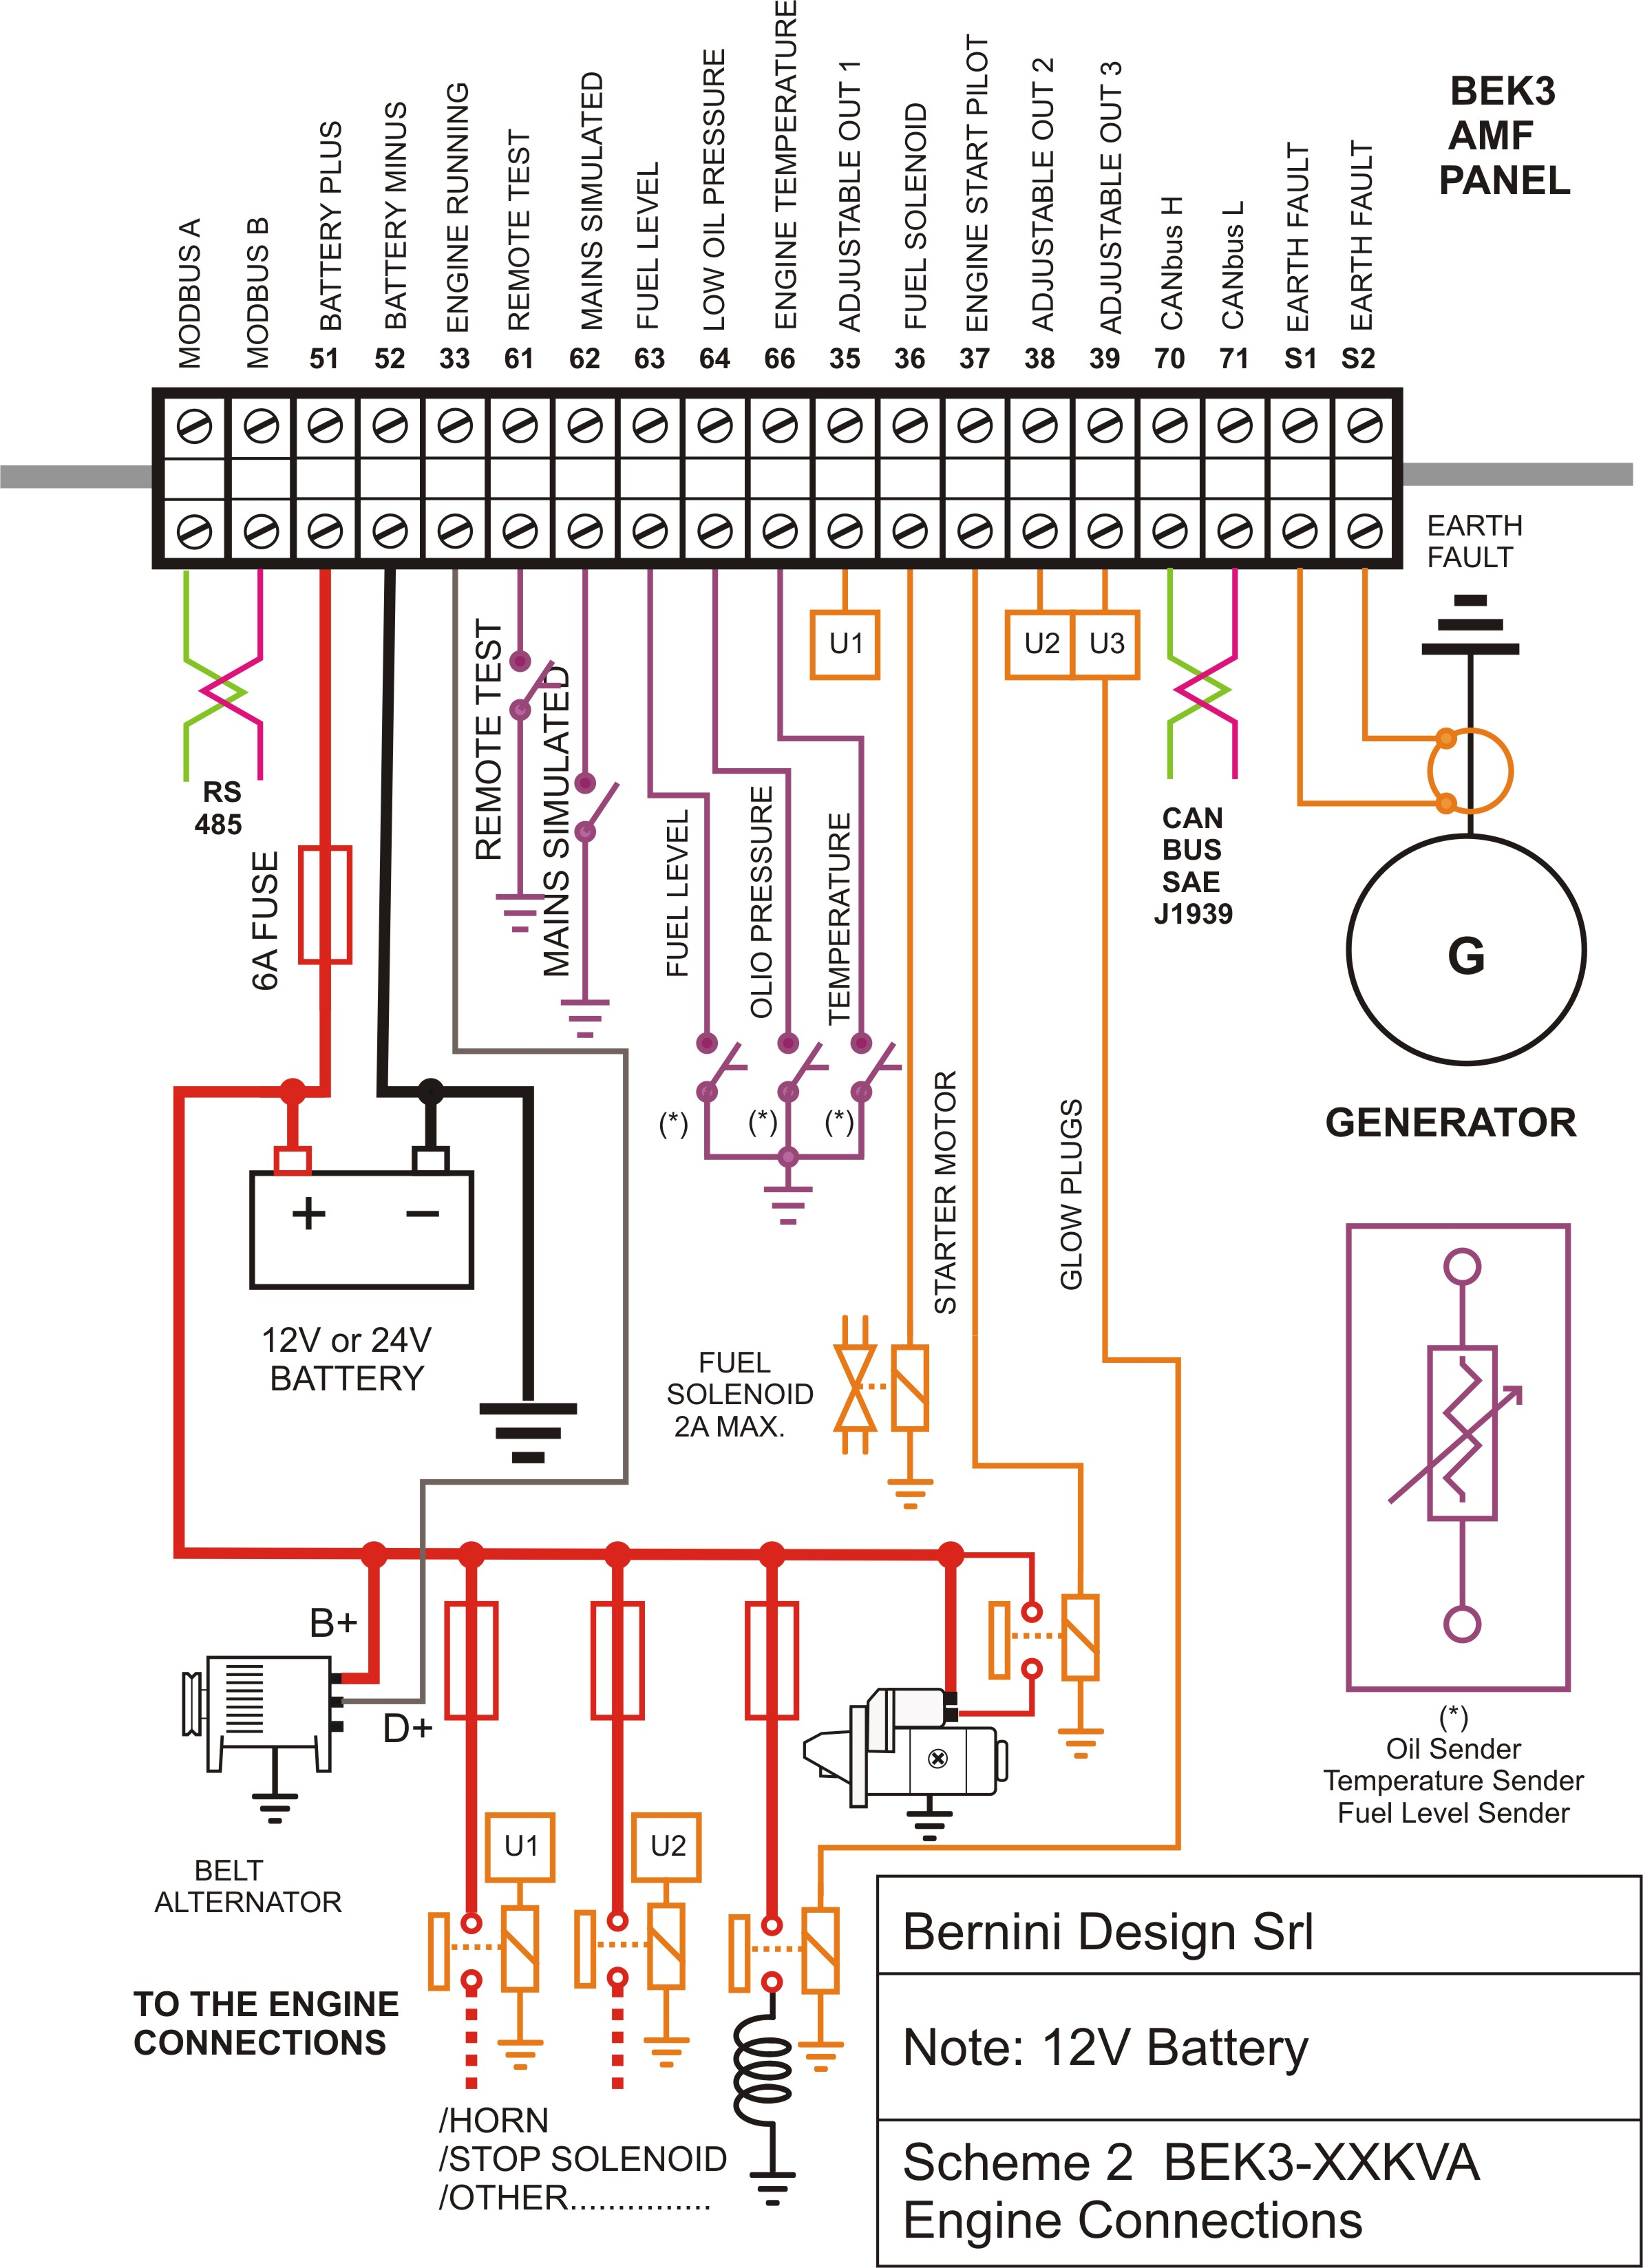 Caterpillar Solenoid Wiring Diagram | Wiring Liry on water heaters diagrams, motor diagrams, electrical diagrams, basic hvac ladder diagrams, plc diagrams, lighting diagrams, security diagrams, 22 halo diagrams, control schematic, pinout diagrams, control room furniture, insulation diagrams, data diagrams, army echelons diagrams, power distribution diagrams, cctv diagrams, plumbing diagrams, refrigeration diagrams, troubleshooting diagrams, engineering diagrams,